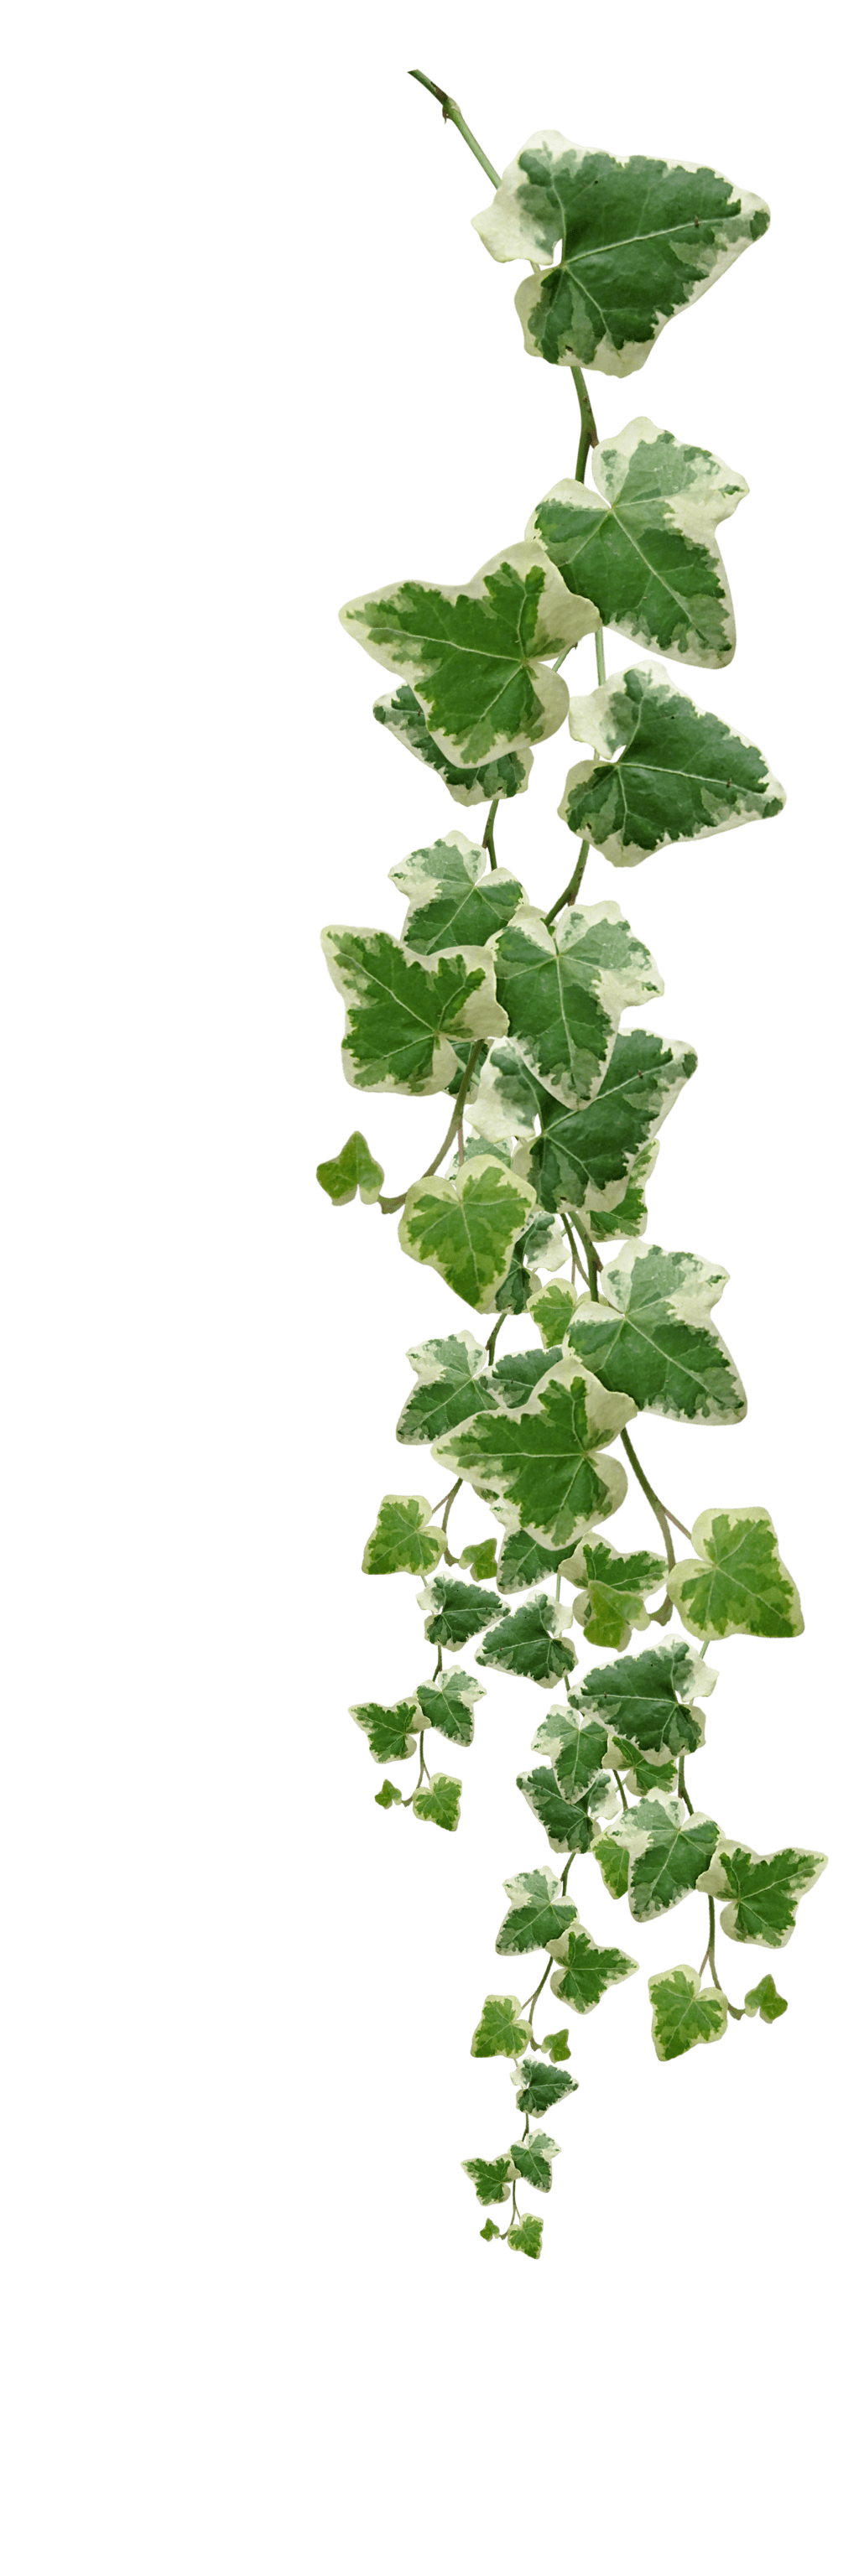 Jungle vine png. Images in collection page